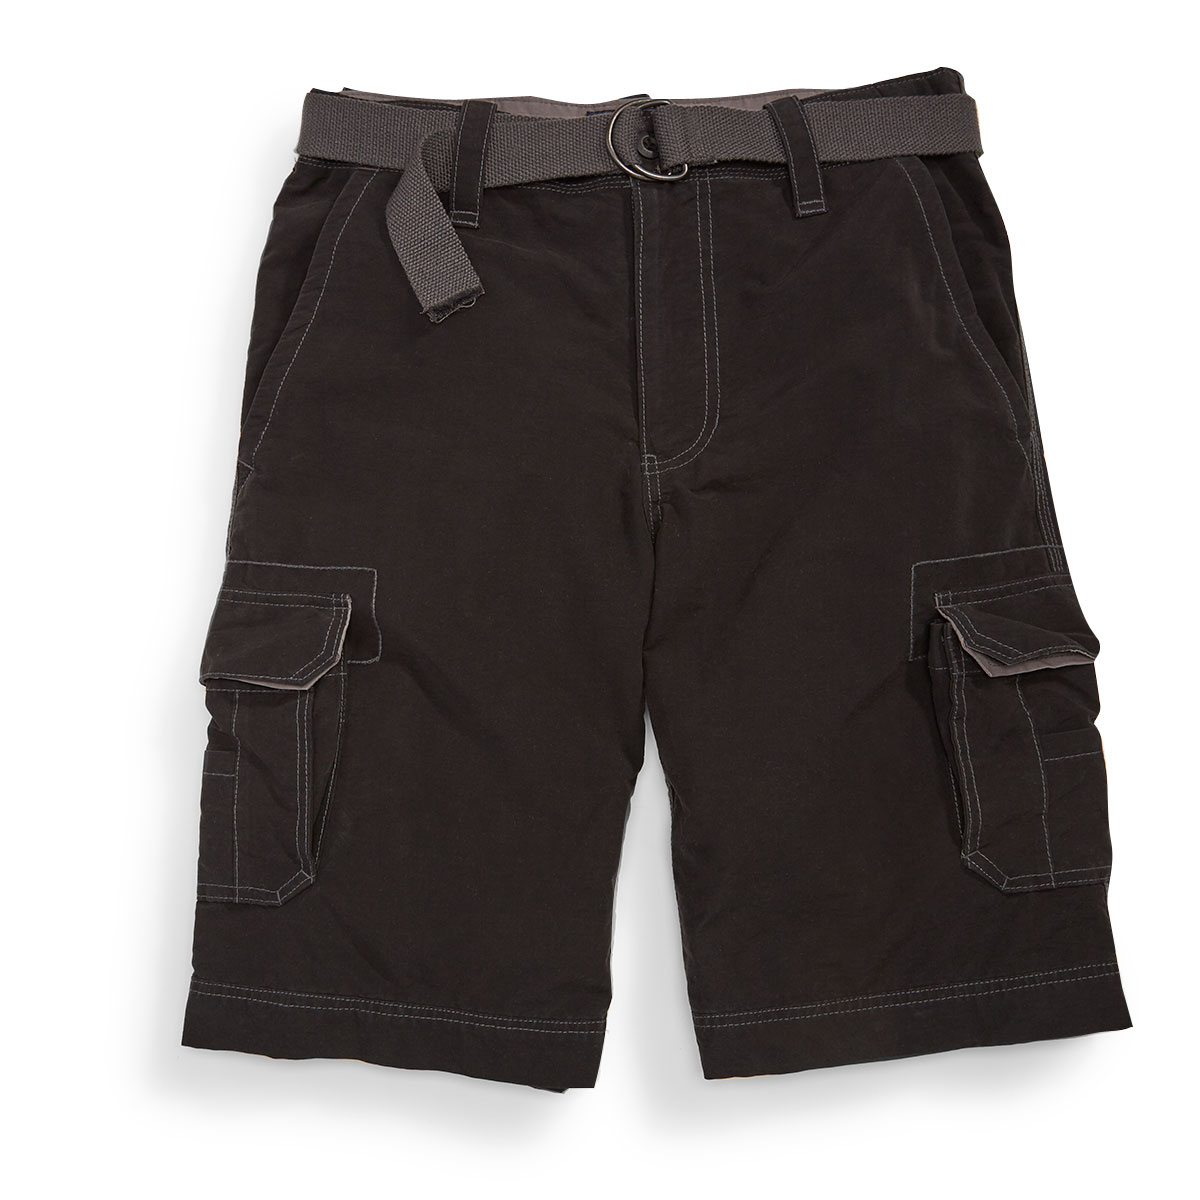 Wear First Guys' Belted Cargo Shorts - Black, 29